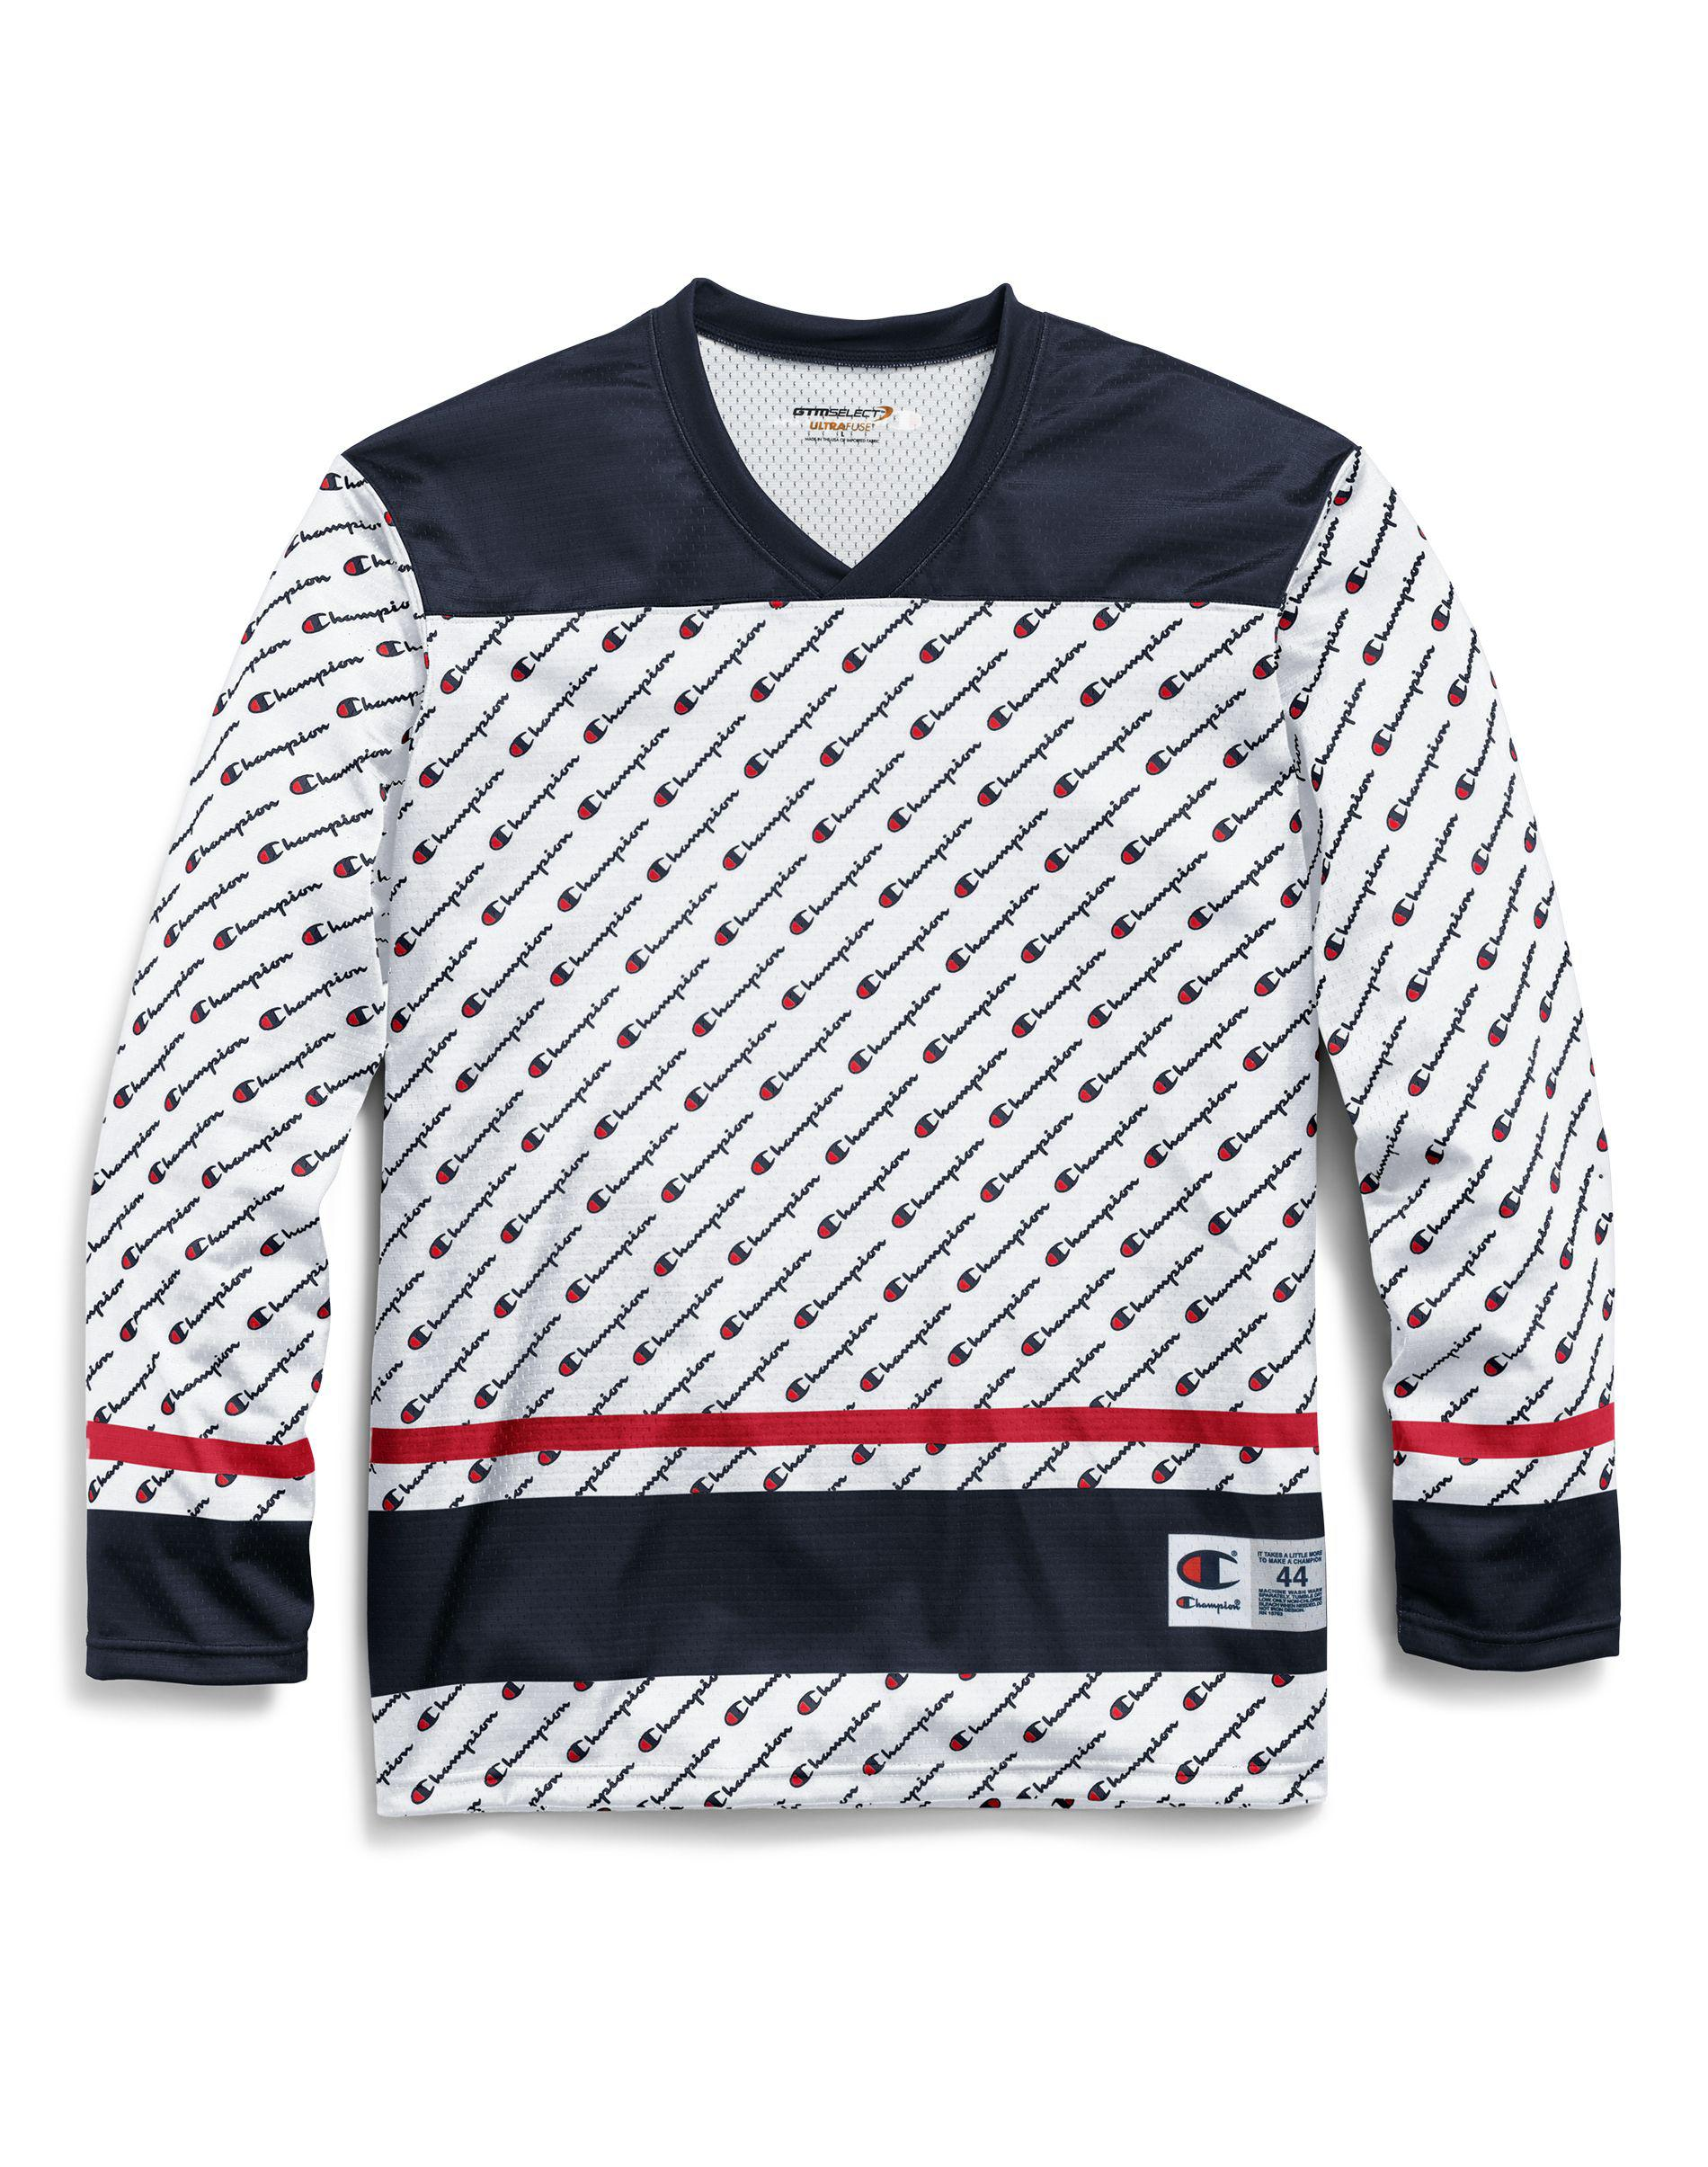 Champion - White Life® Printed Hockey Jersey for Men - Lyst. View fullscreen 53b4f4cb6